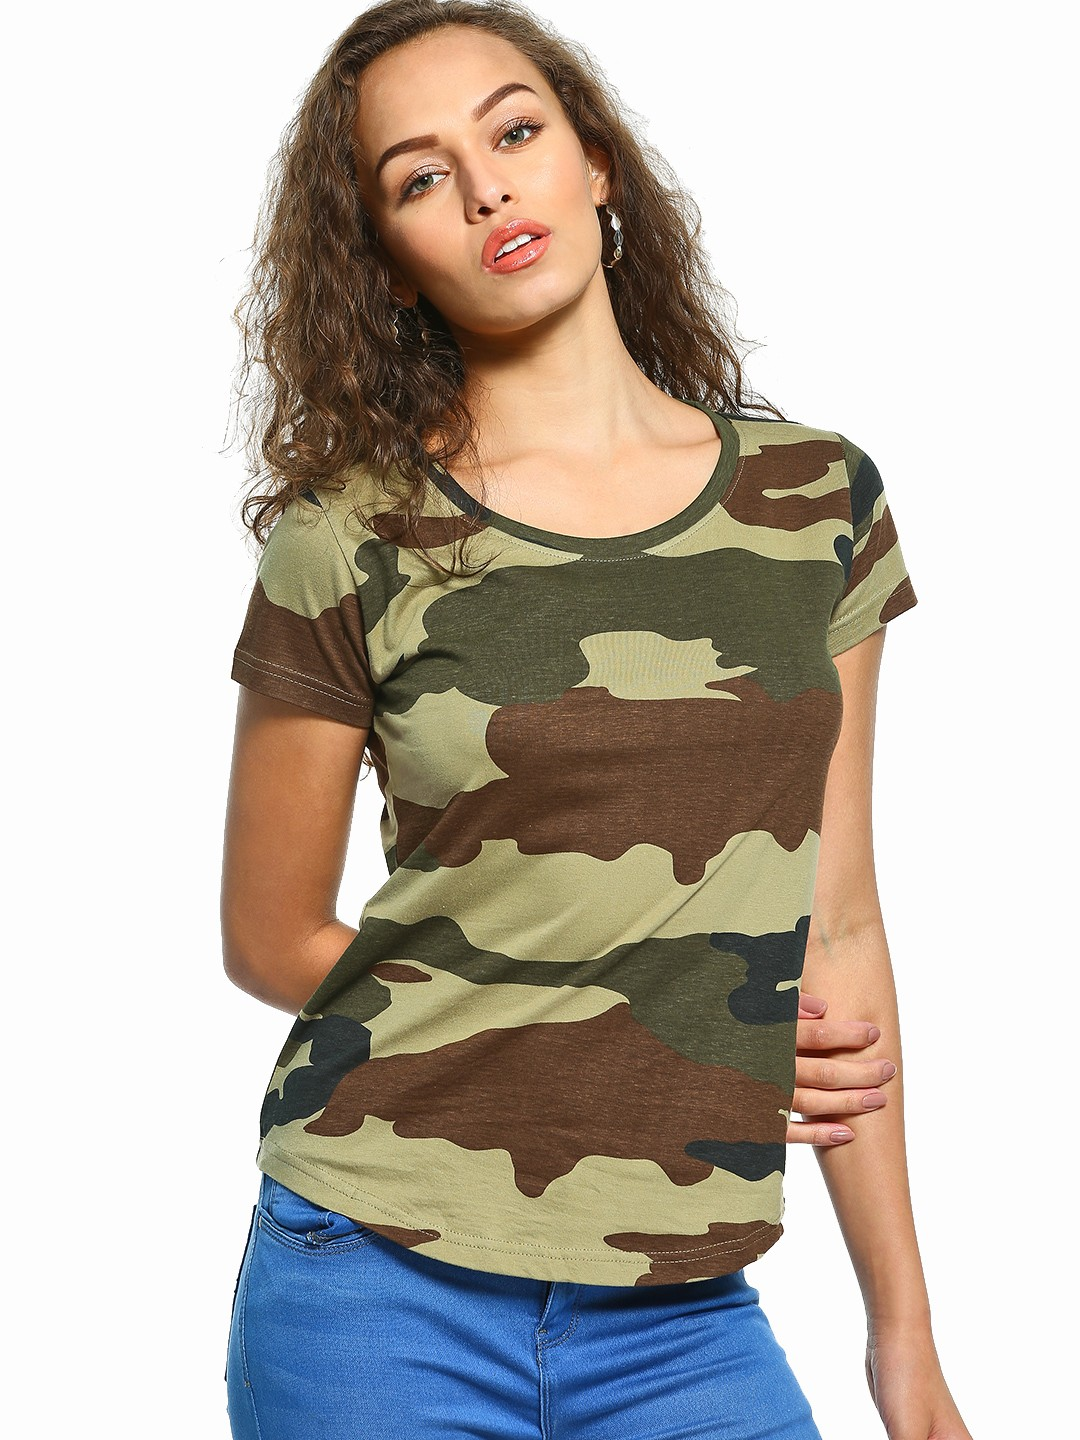 The Dry State Multi Camo Print T-Shirt 1